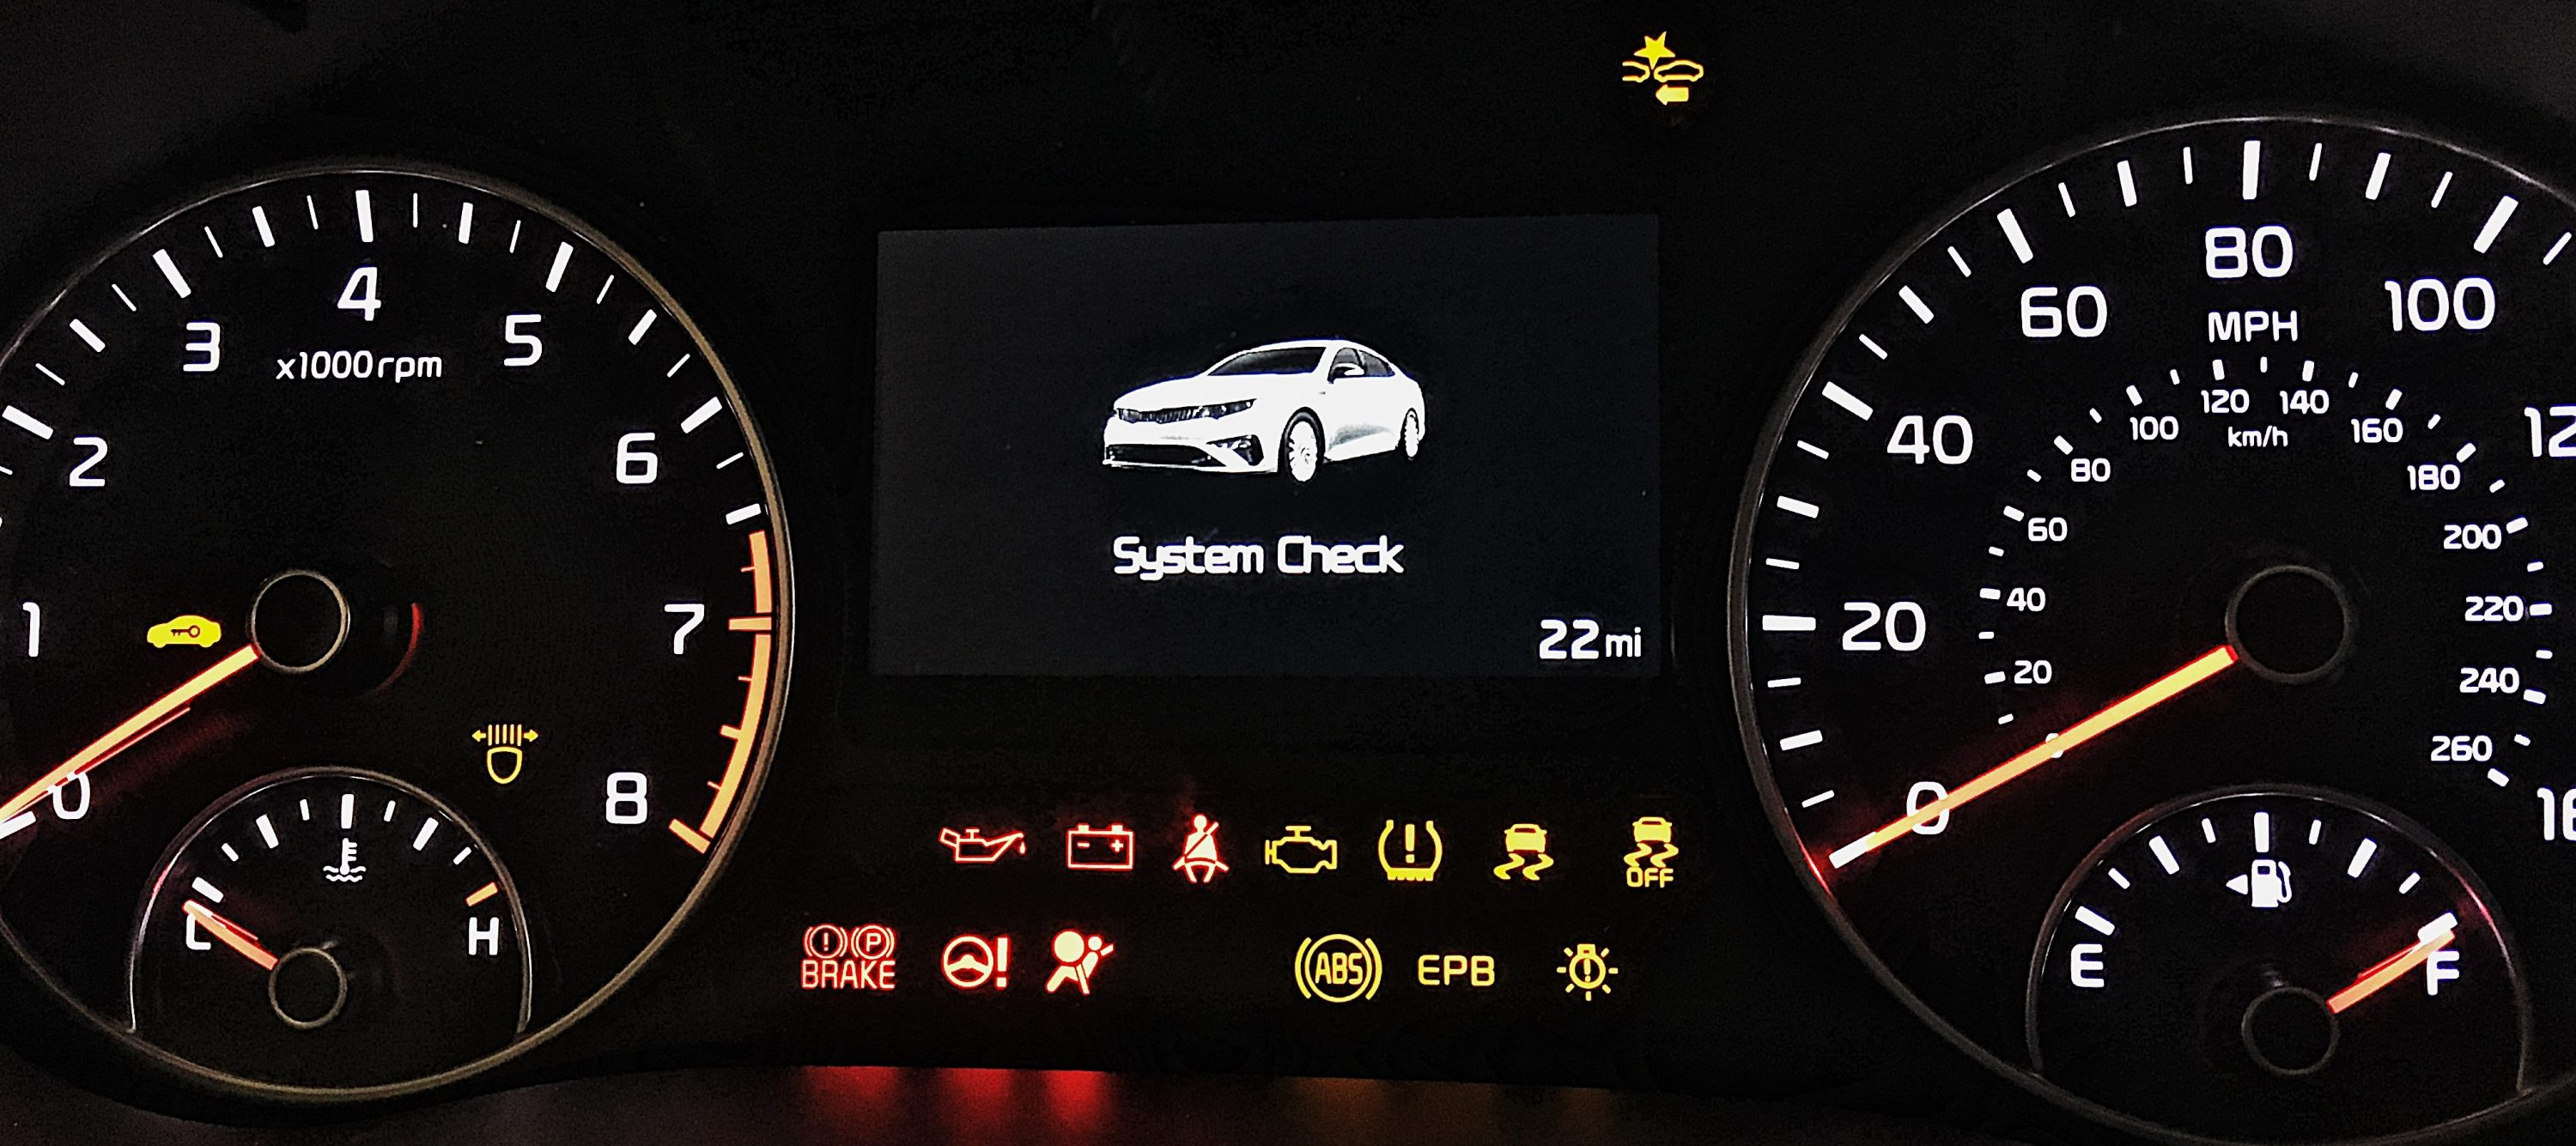 15 Car Dashboard Warning Lights: What do they mean? - Matt ...